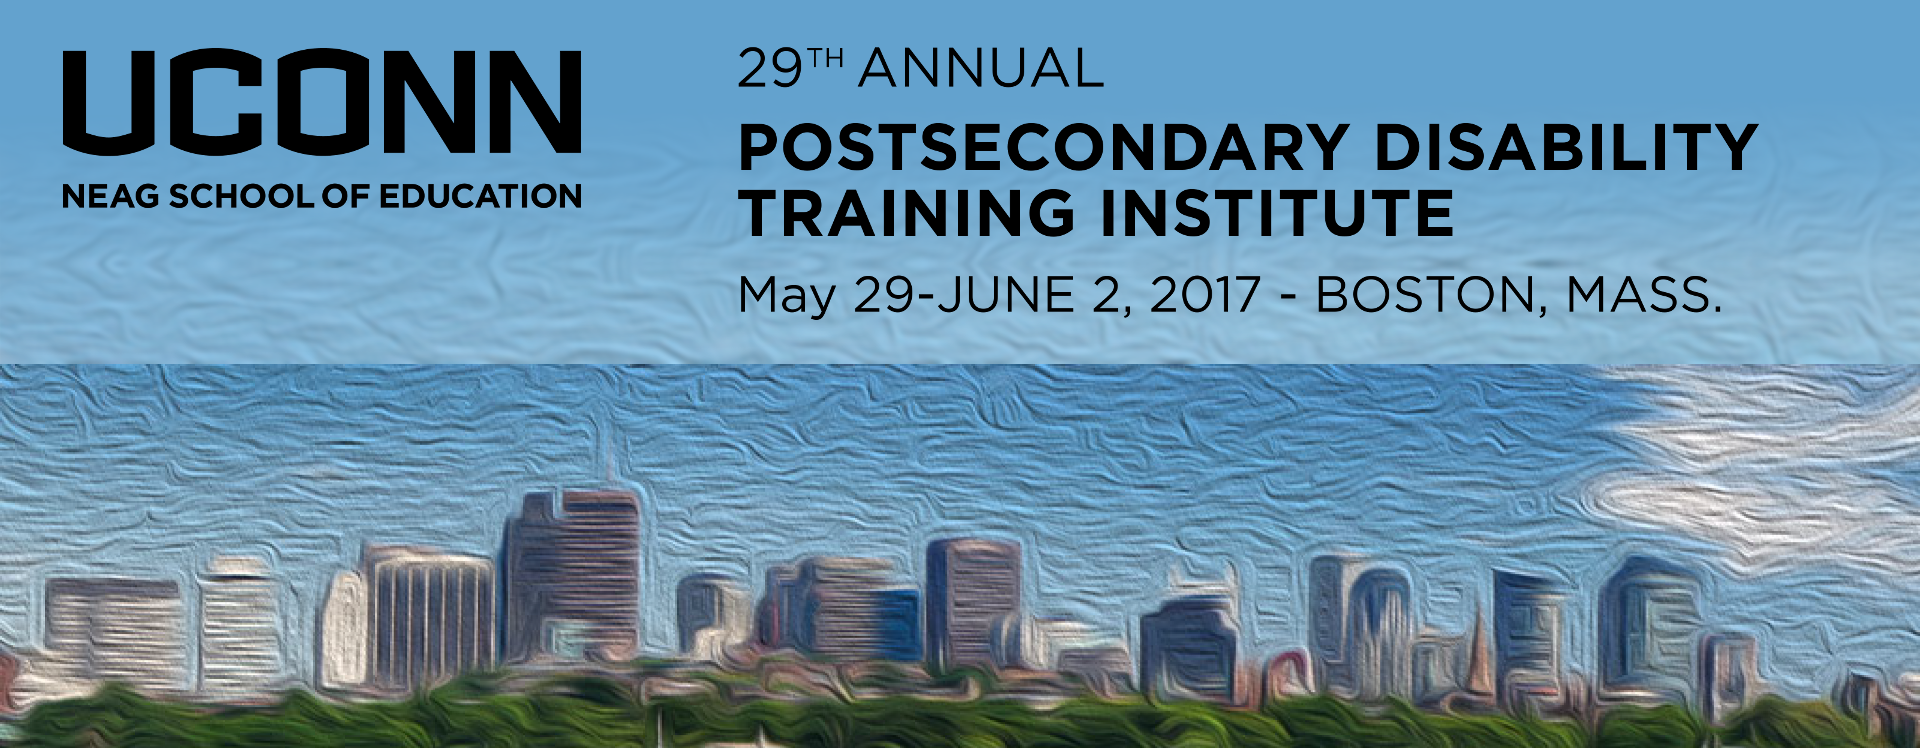 PTI 2017 - May 30-June 2, 2017 in Boston, MA